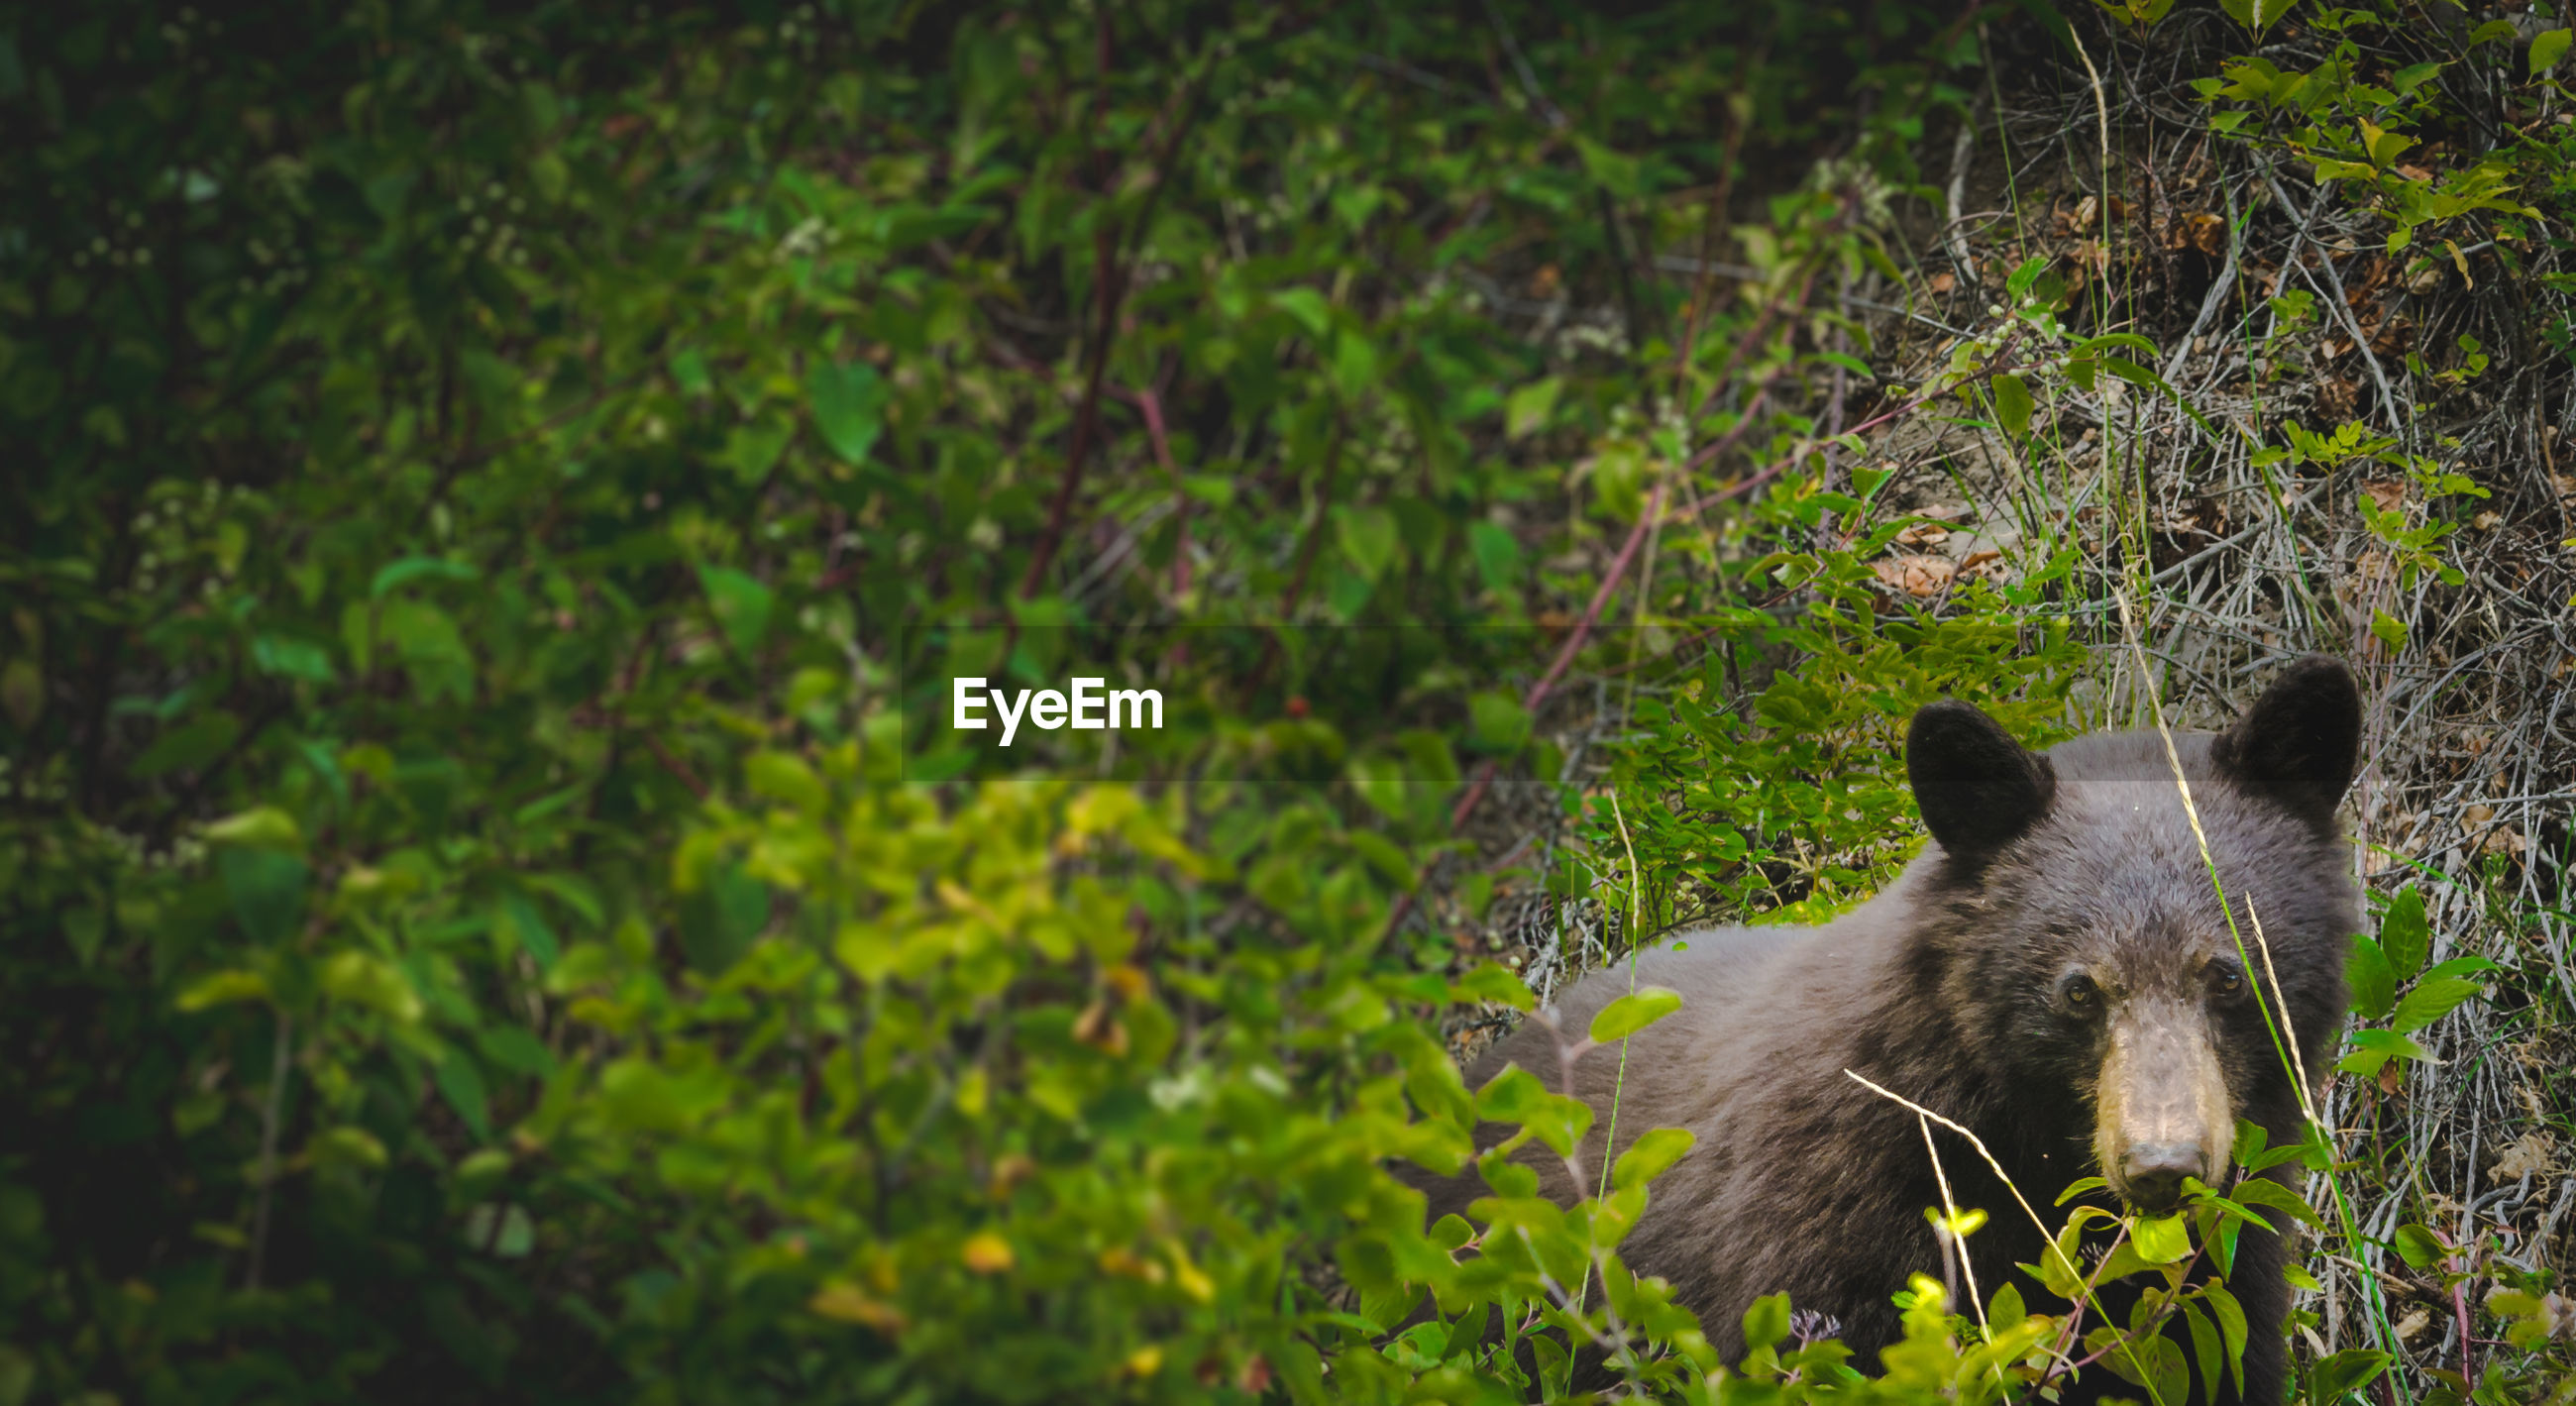 Bear amidst plants at forest